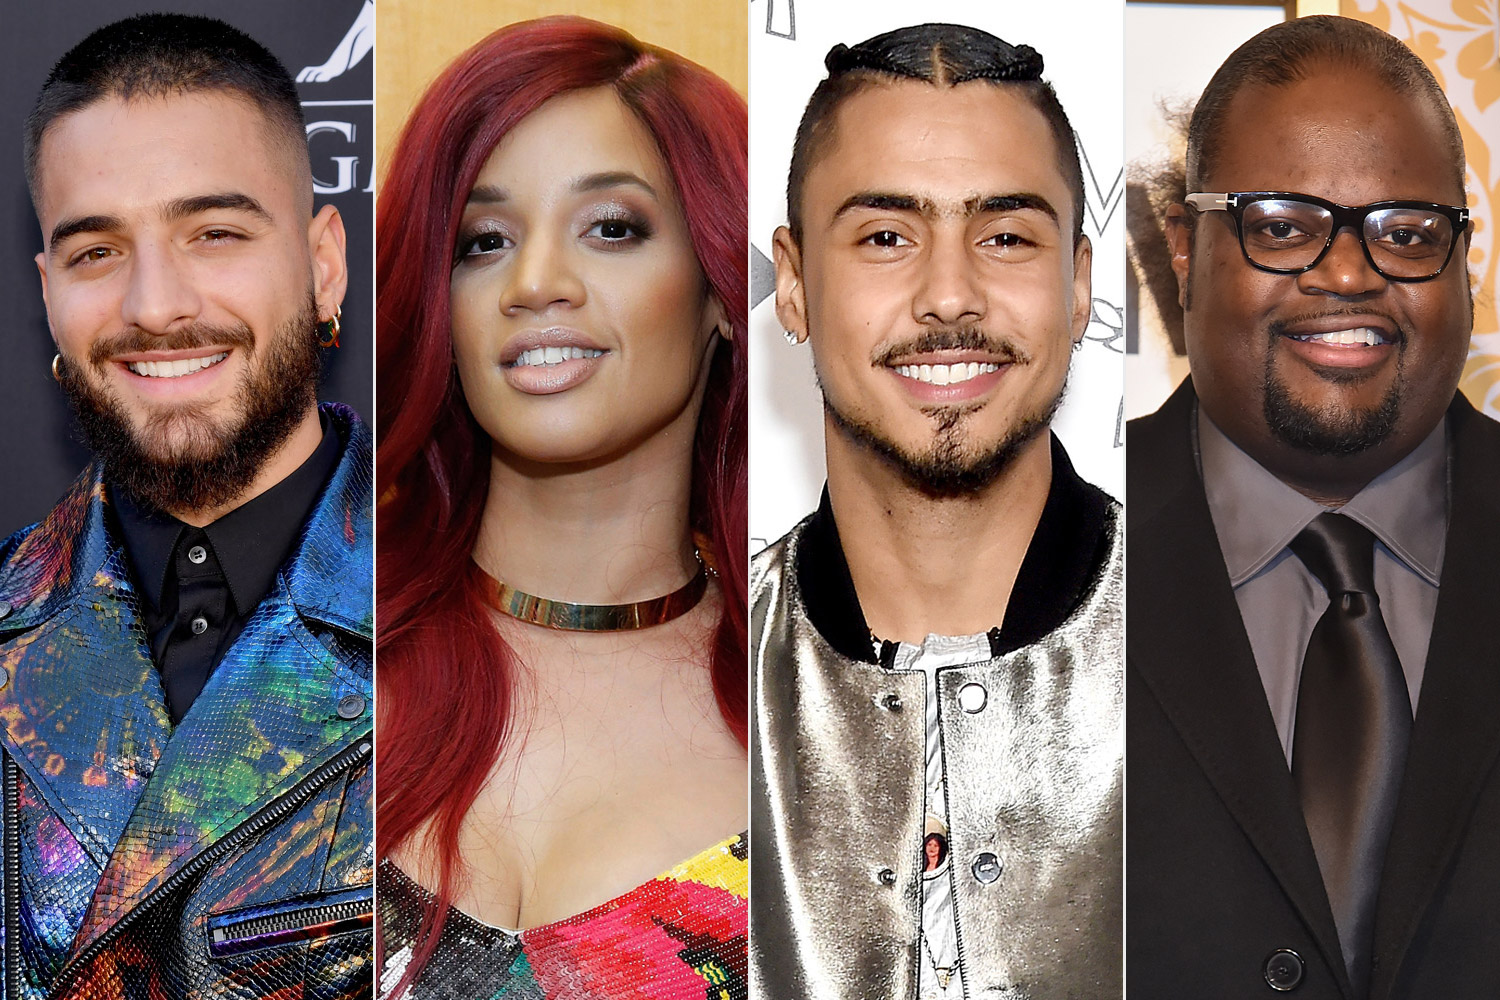 Maluma, Quincy, Poo Bear and Dascha Polanco